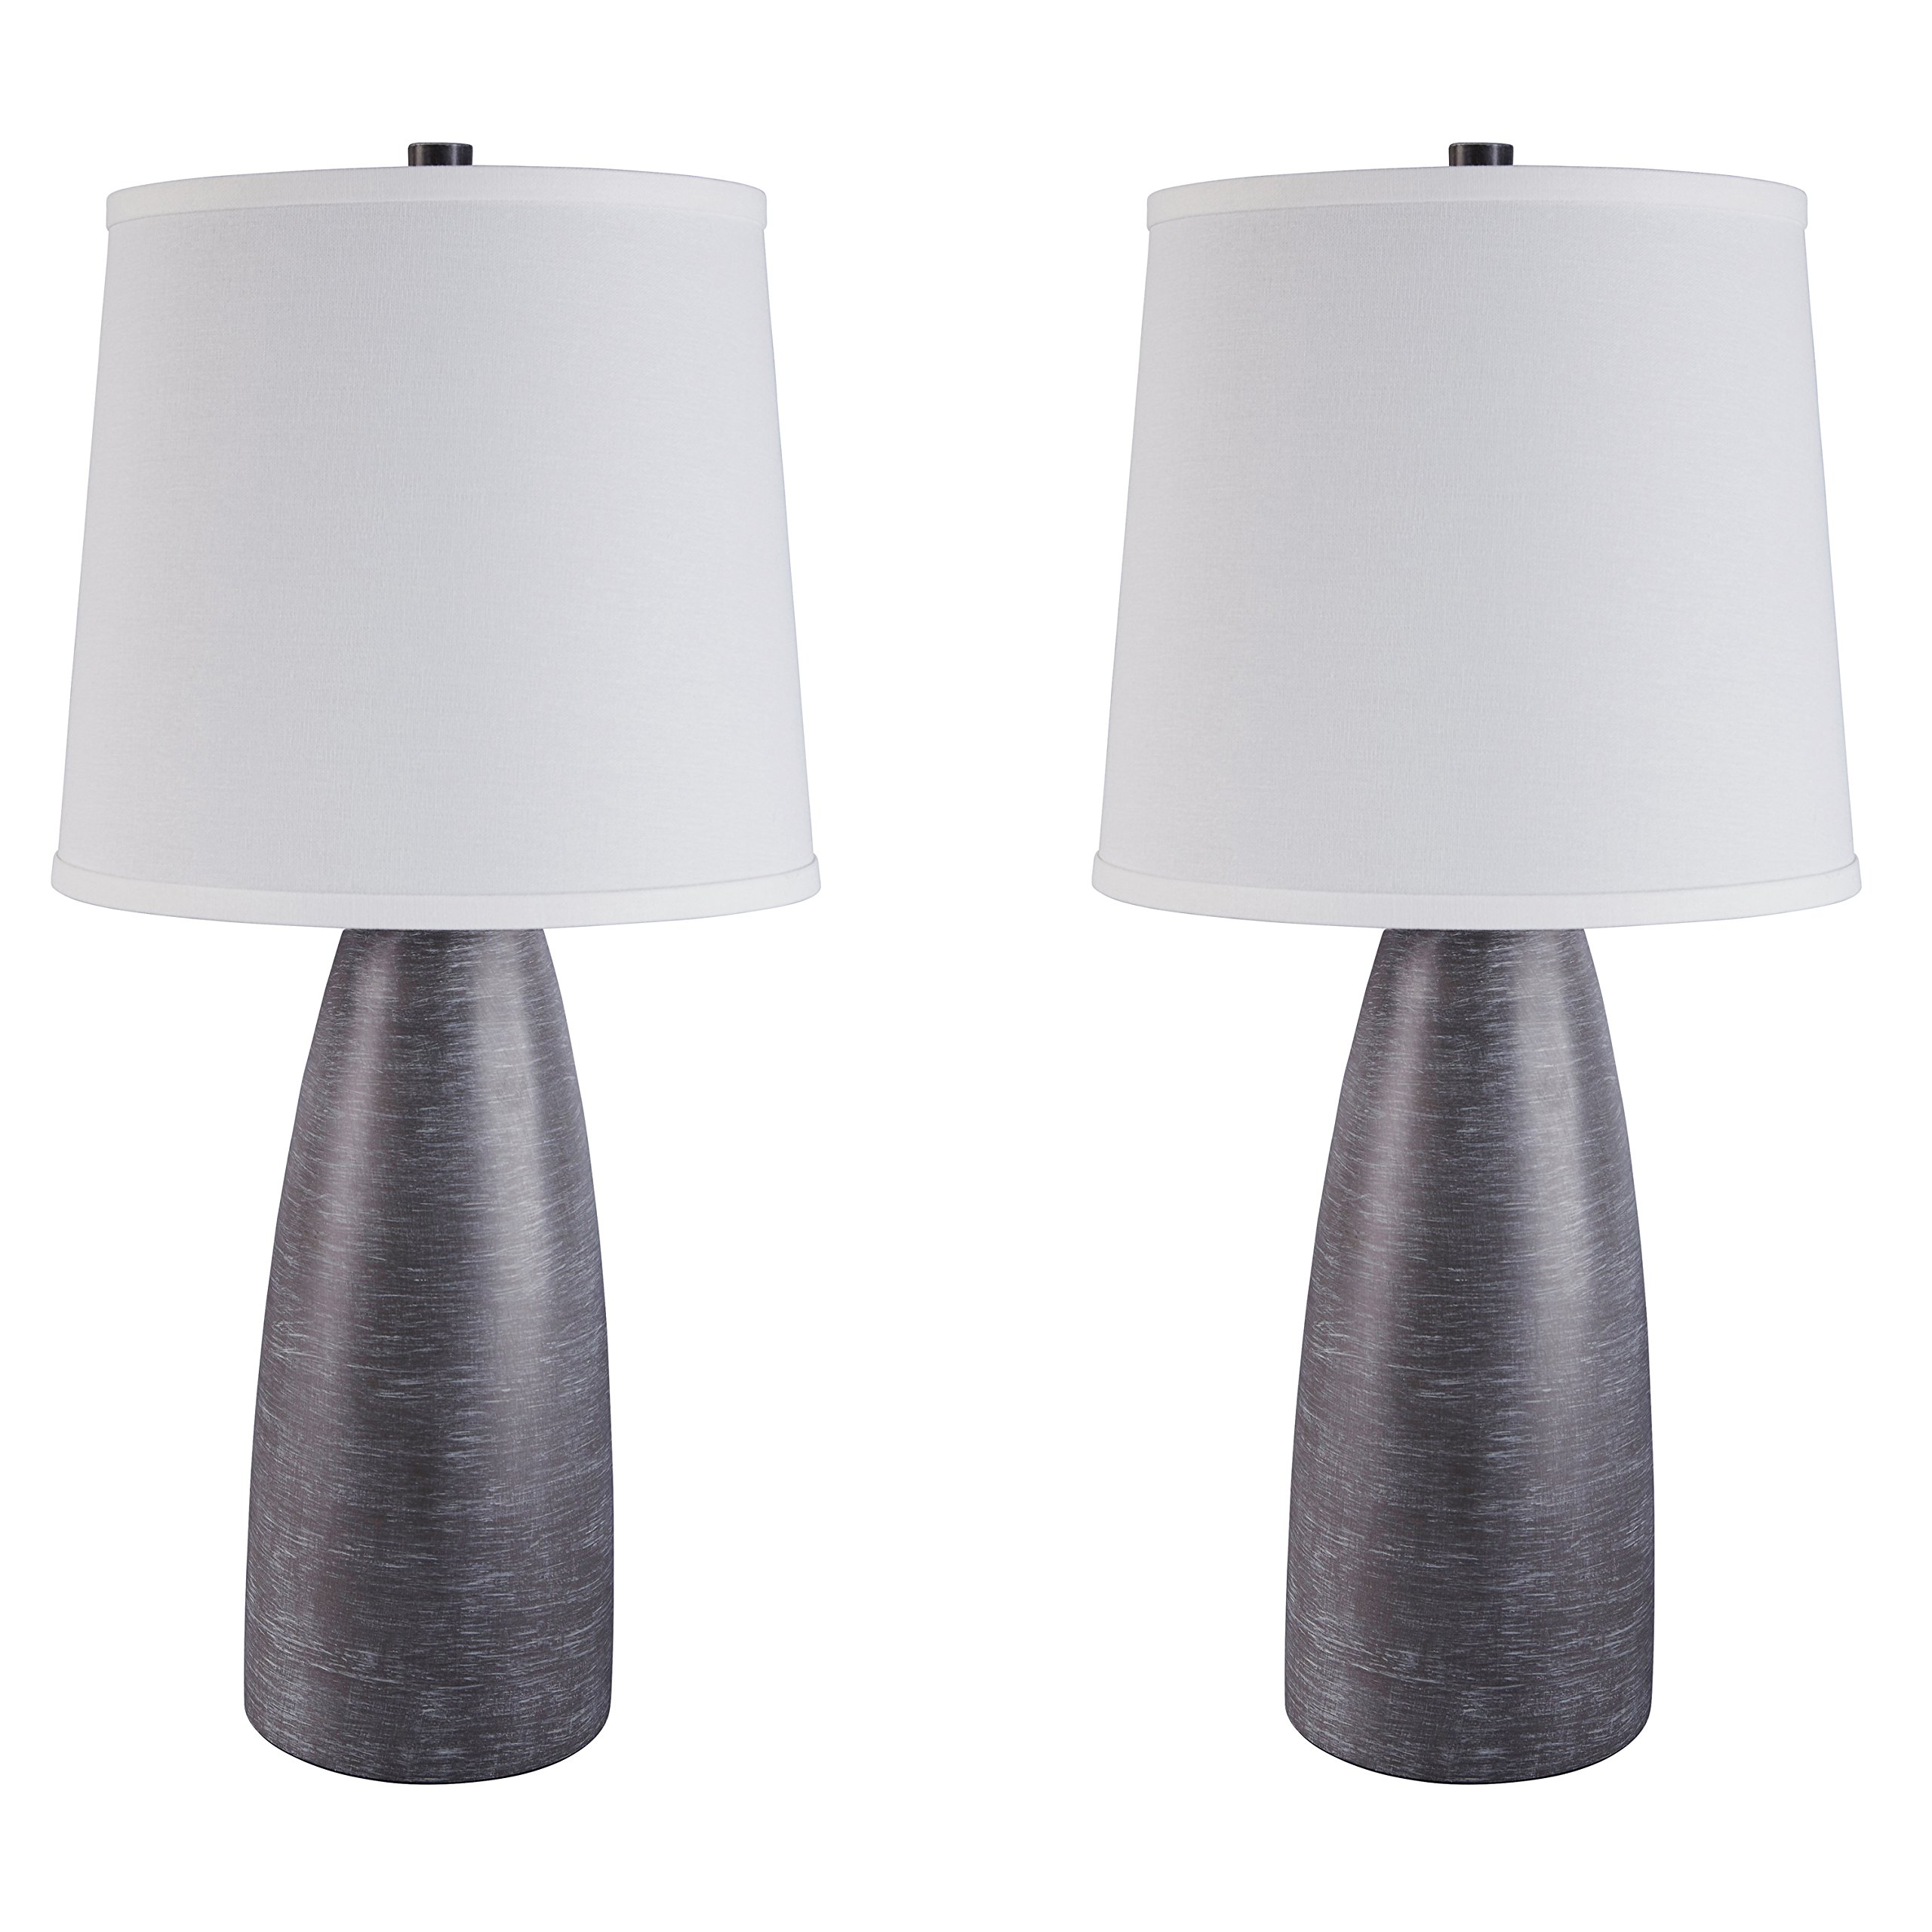 Ashley Furniture Signature Design - Shavontae Table Lamps - Set of 2 - Modern - Contemporary - Gray